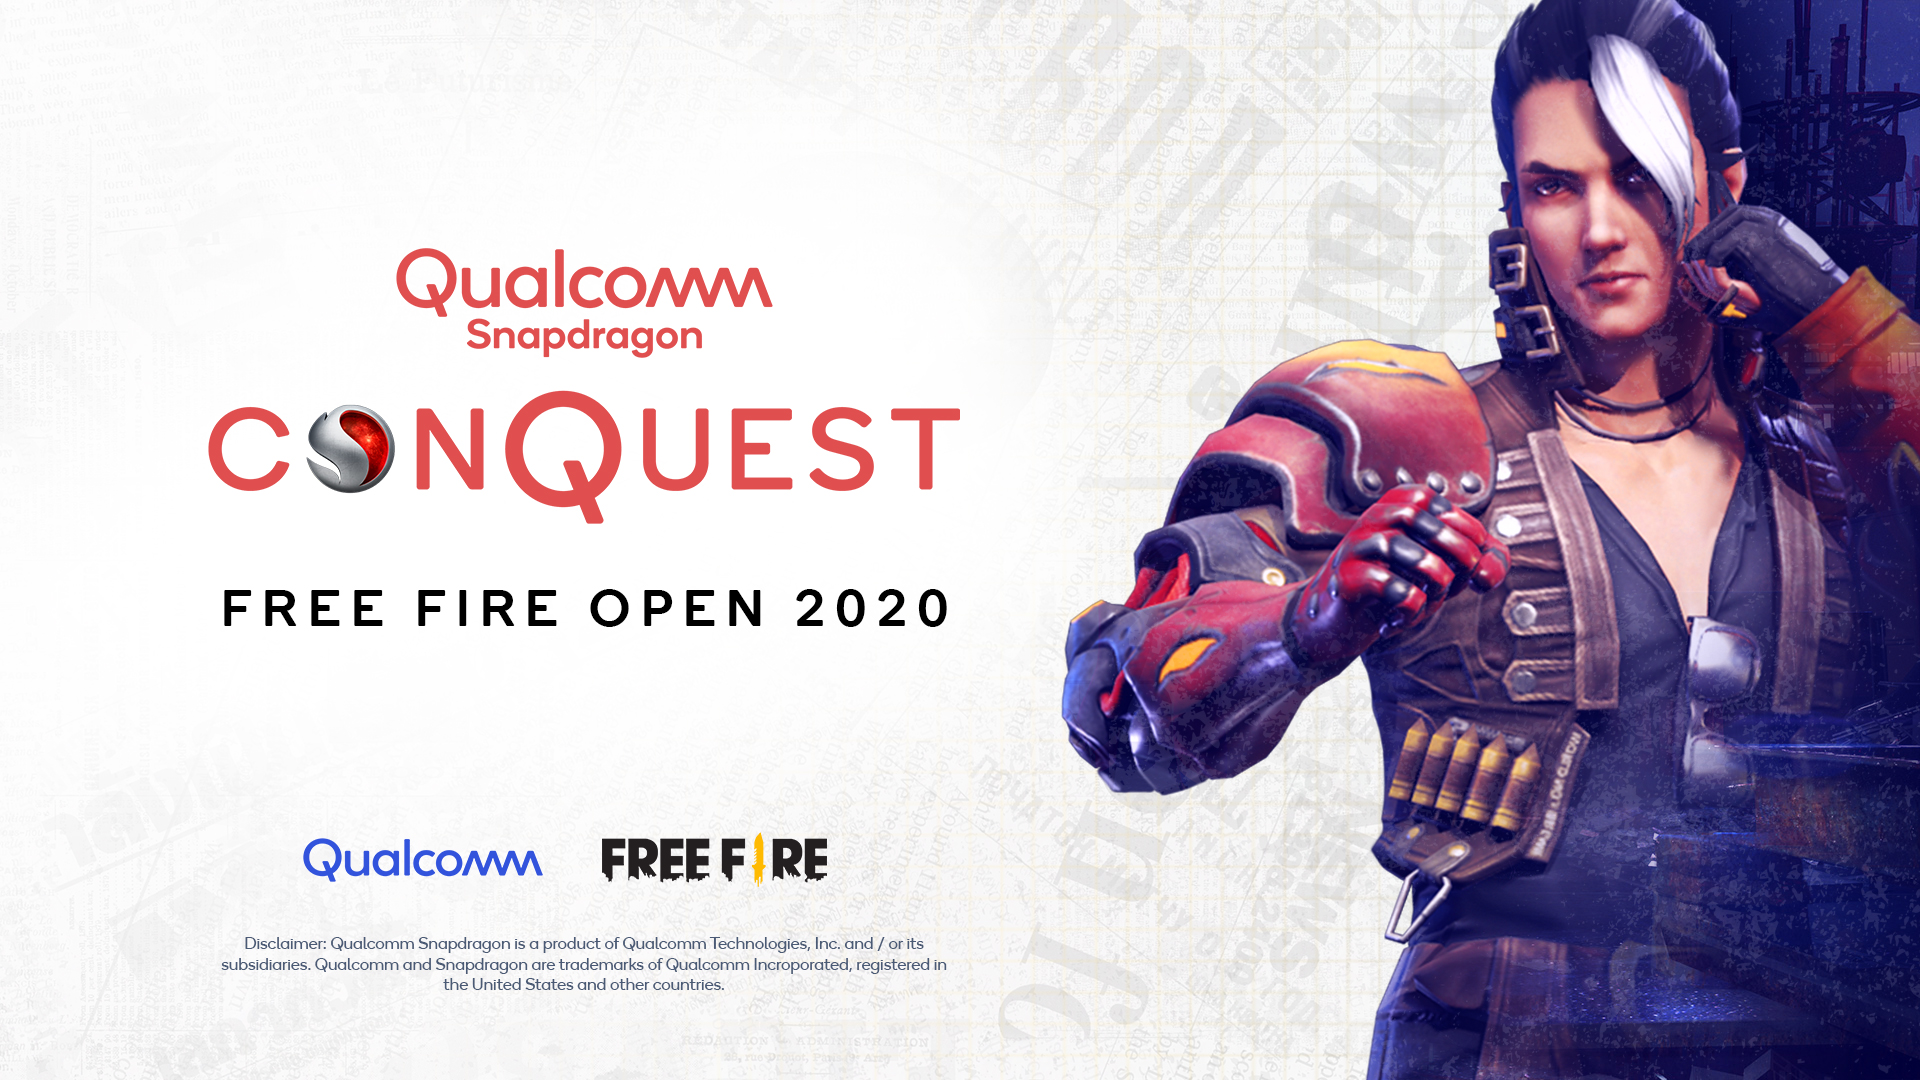 Qualcomm launches Snapdragon Conquest, its first Esports Initiative in India